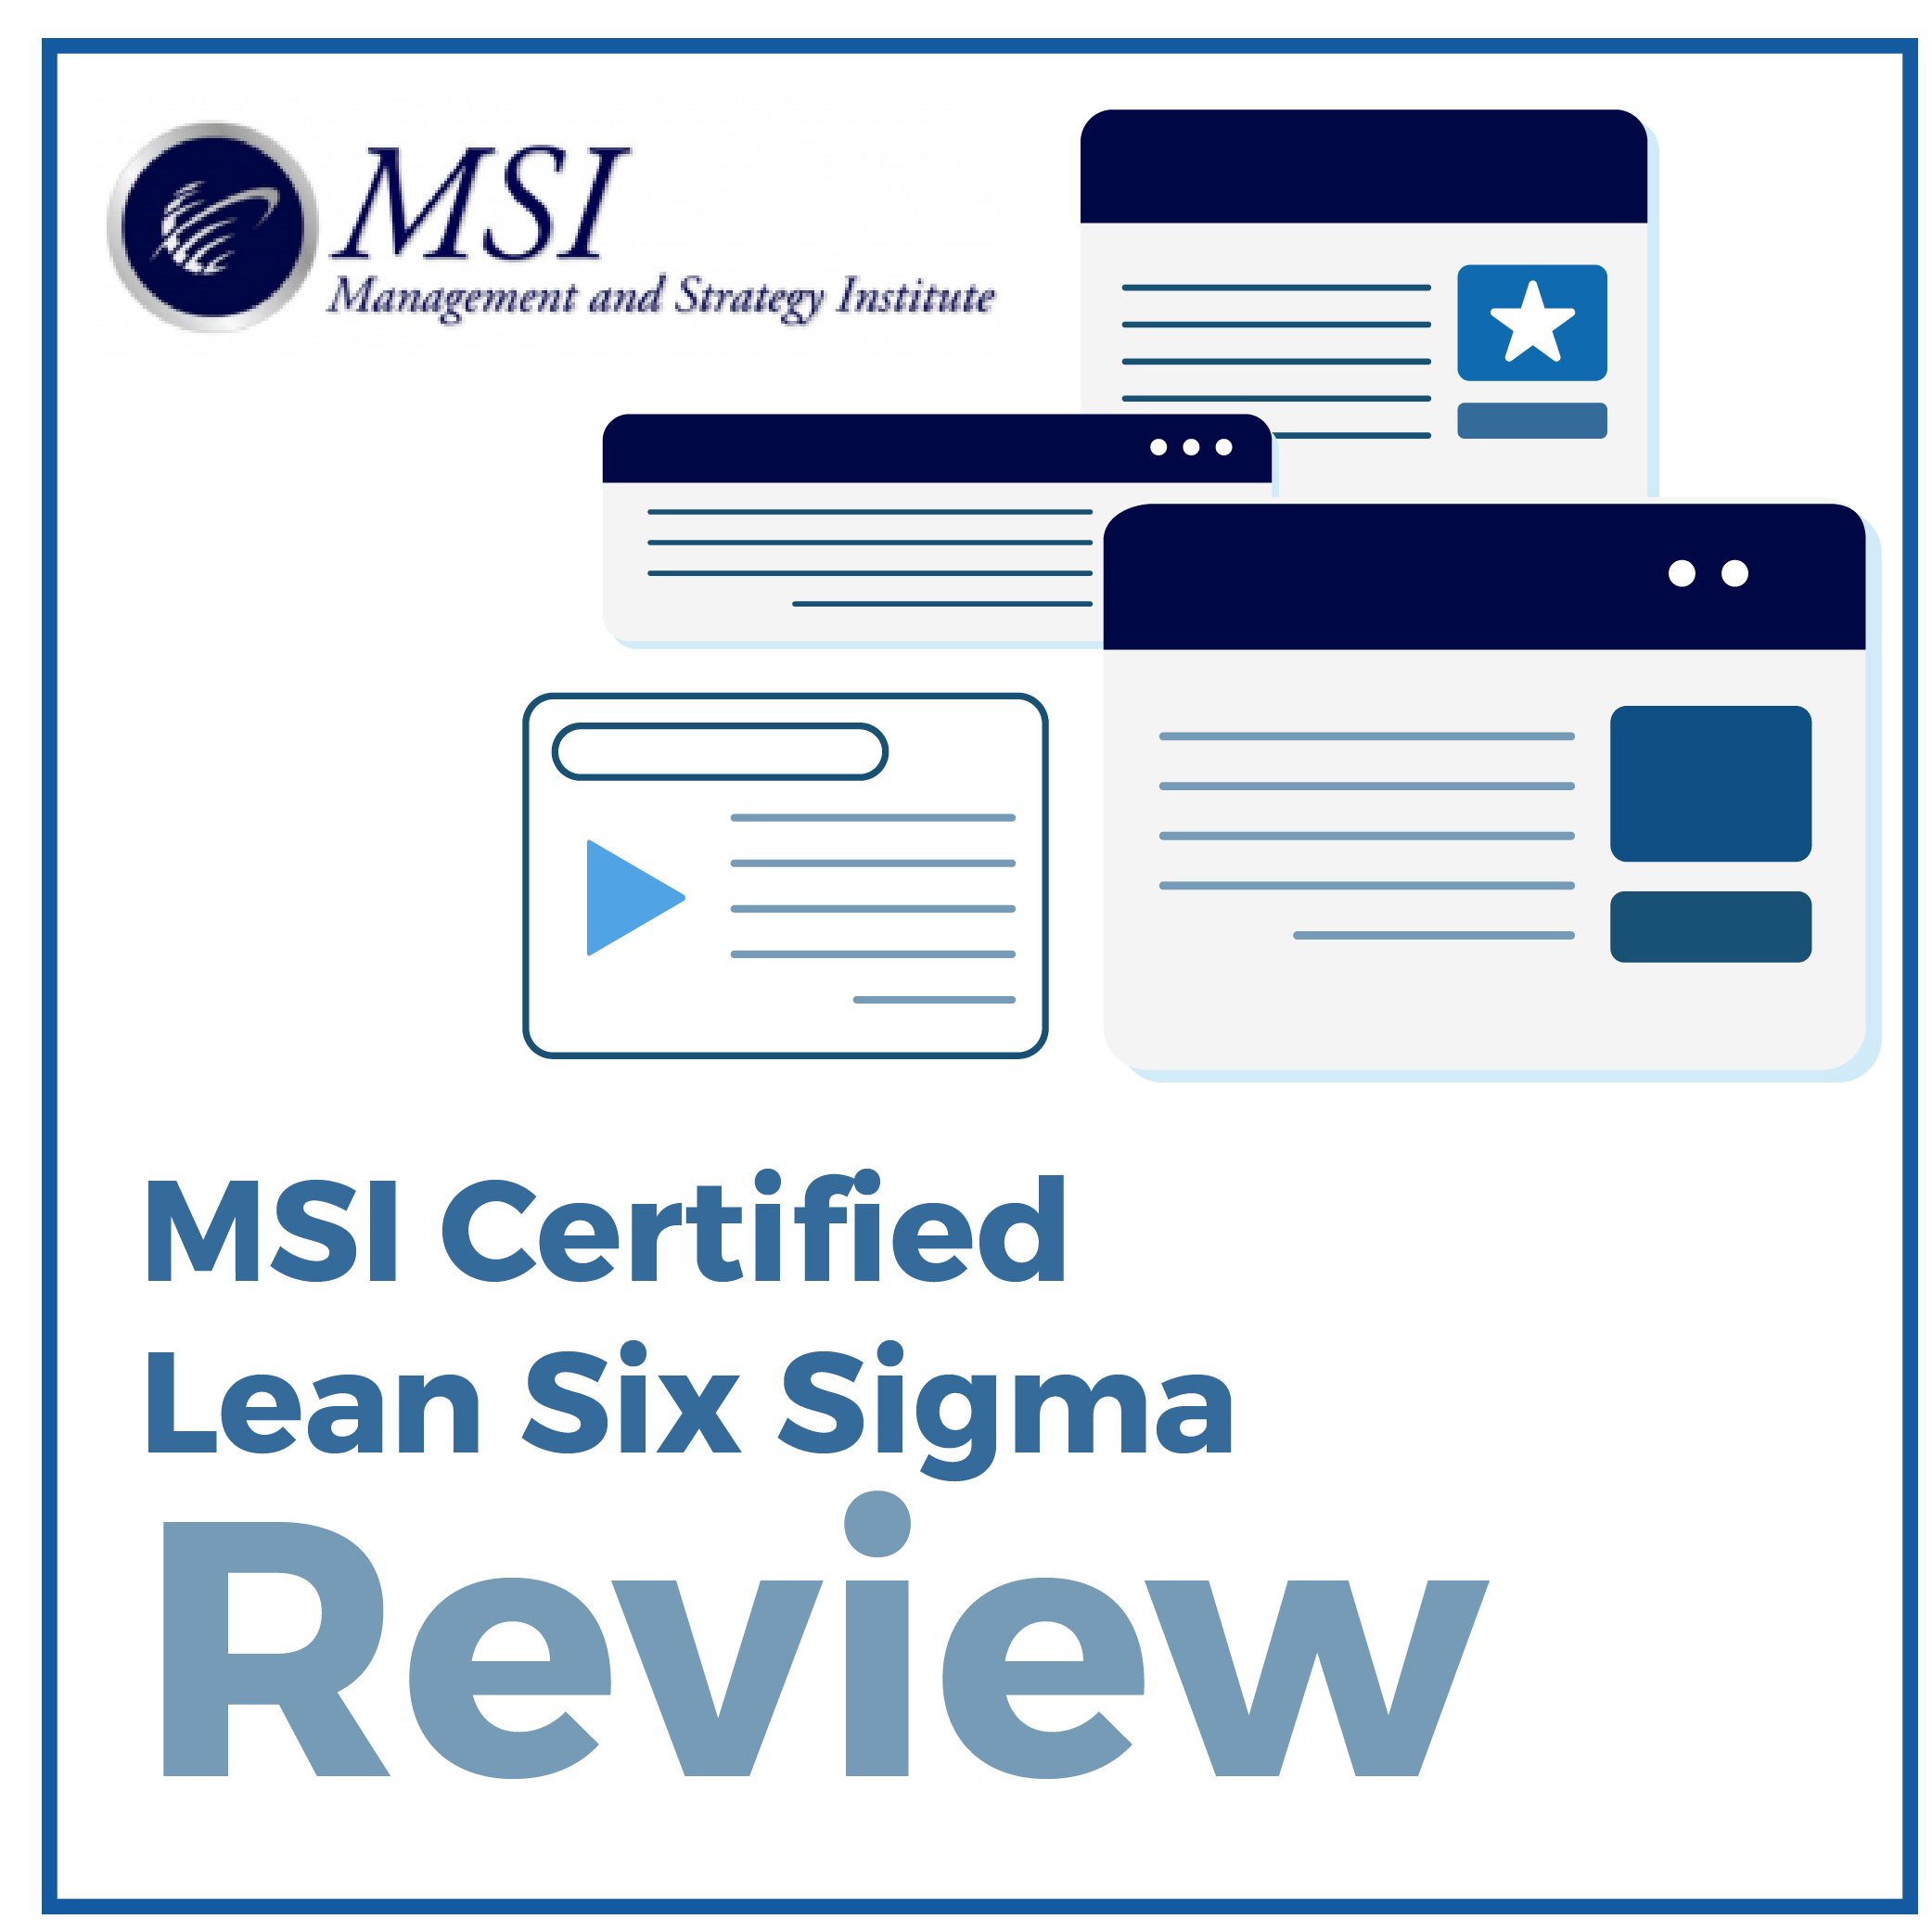 MSI Certified Lean Six Sigma Review [Management and Strategy ...